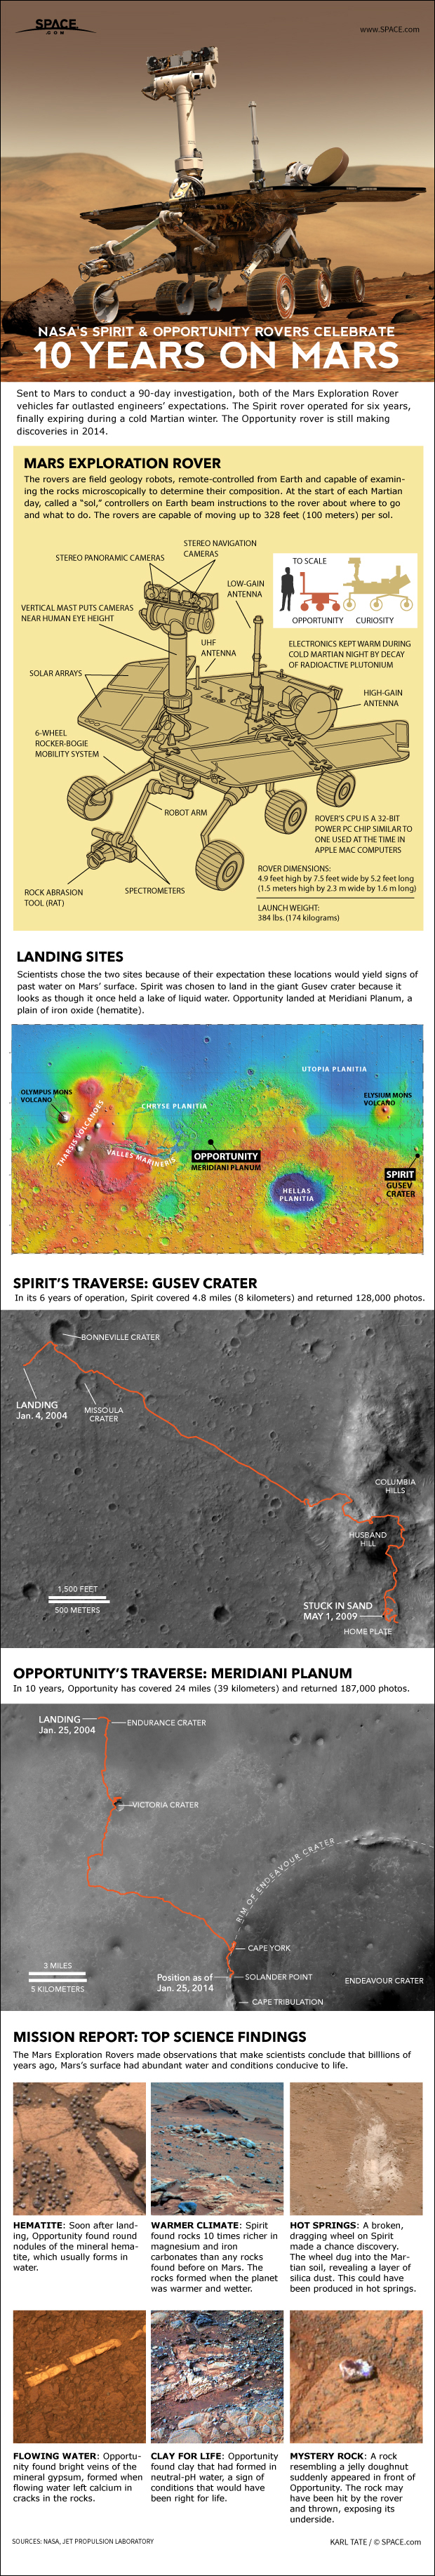 How the Spirit and Opportunity Mars rovers work.